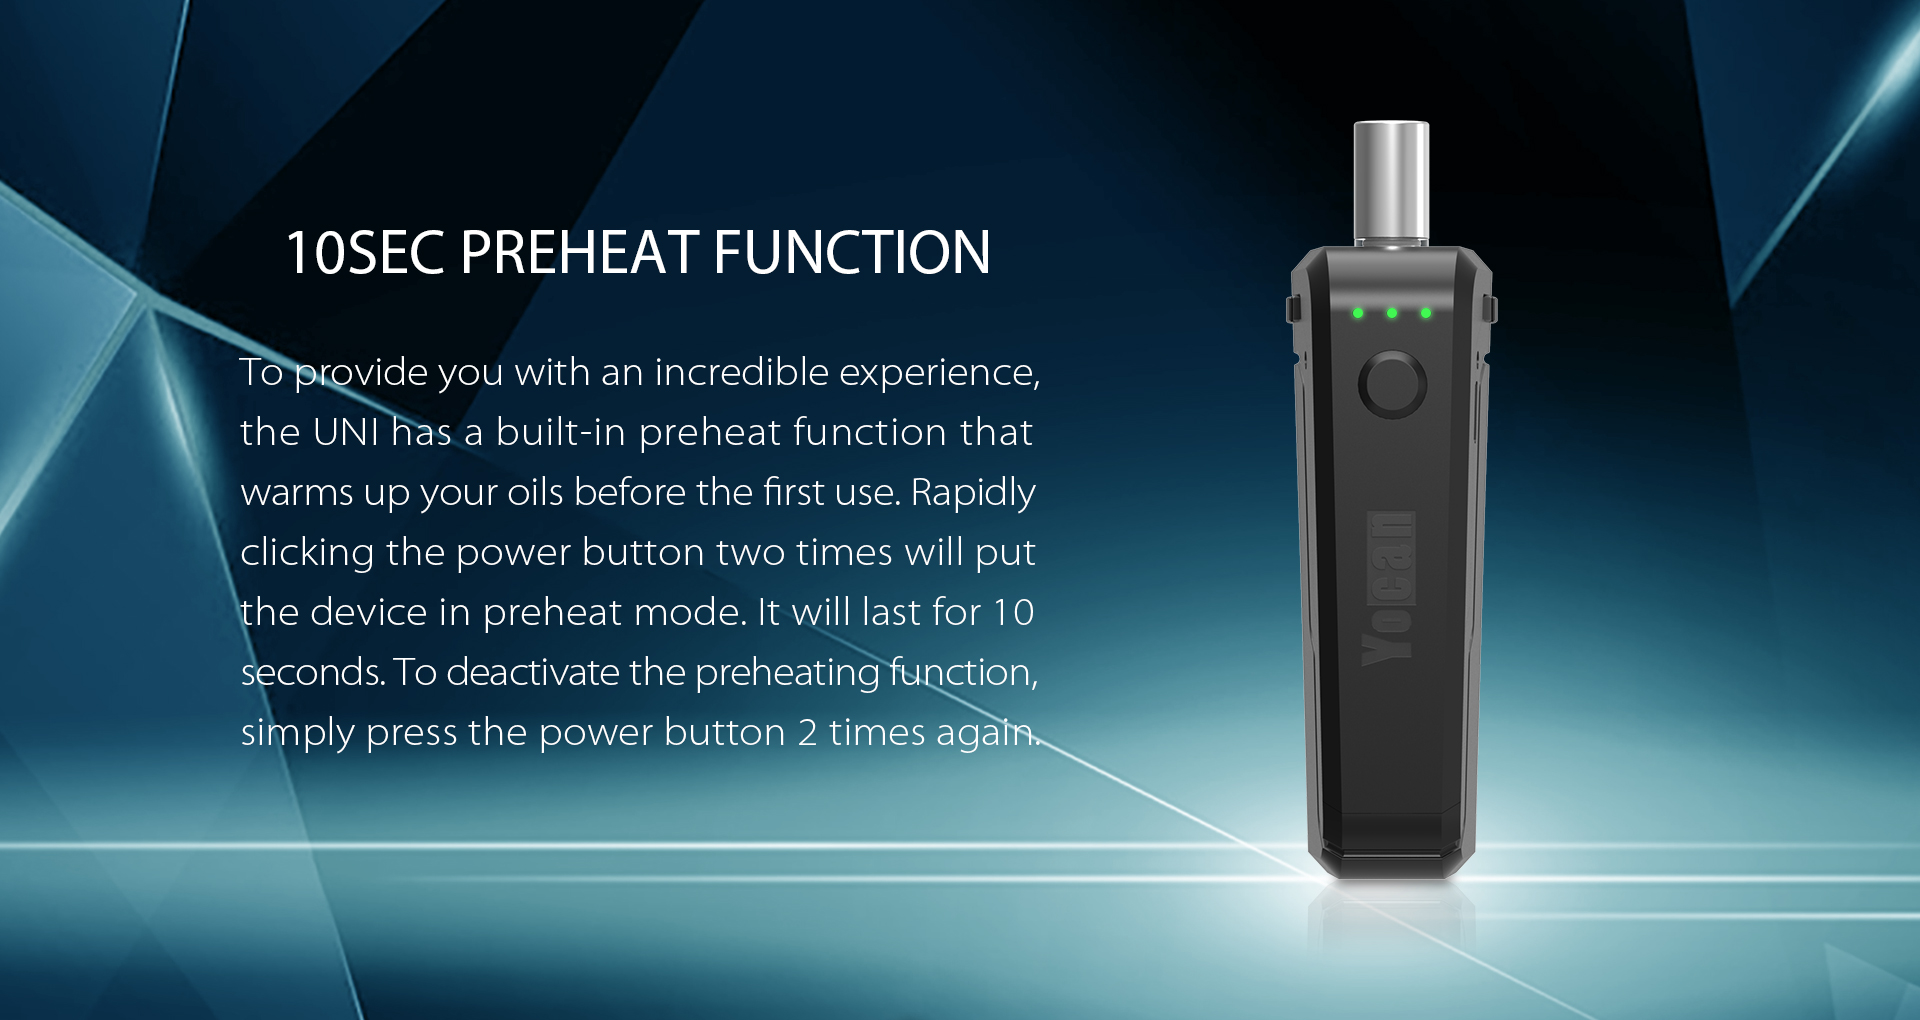 Yocan UNI has a built-in preheat function that warms up your oils before the first use.